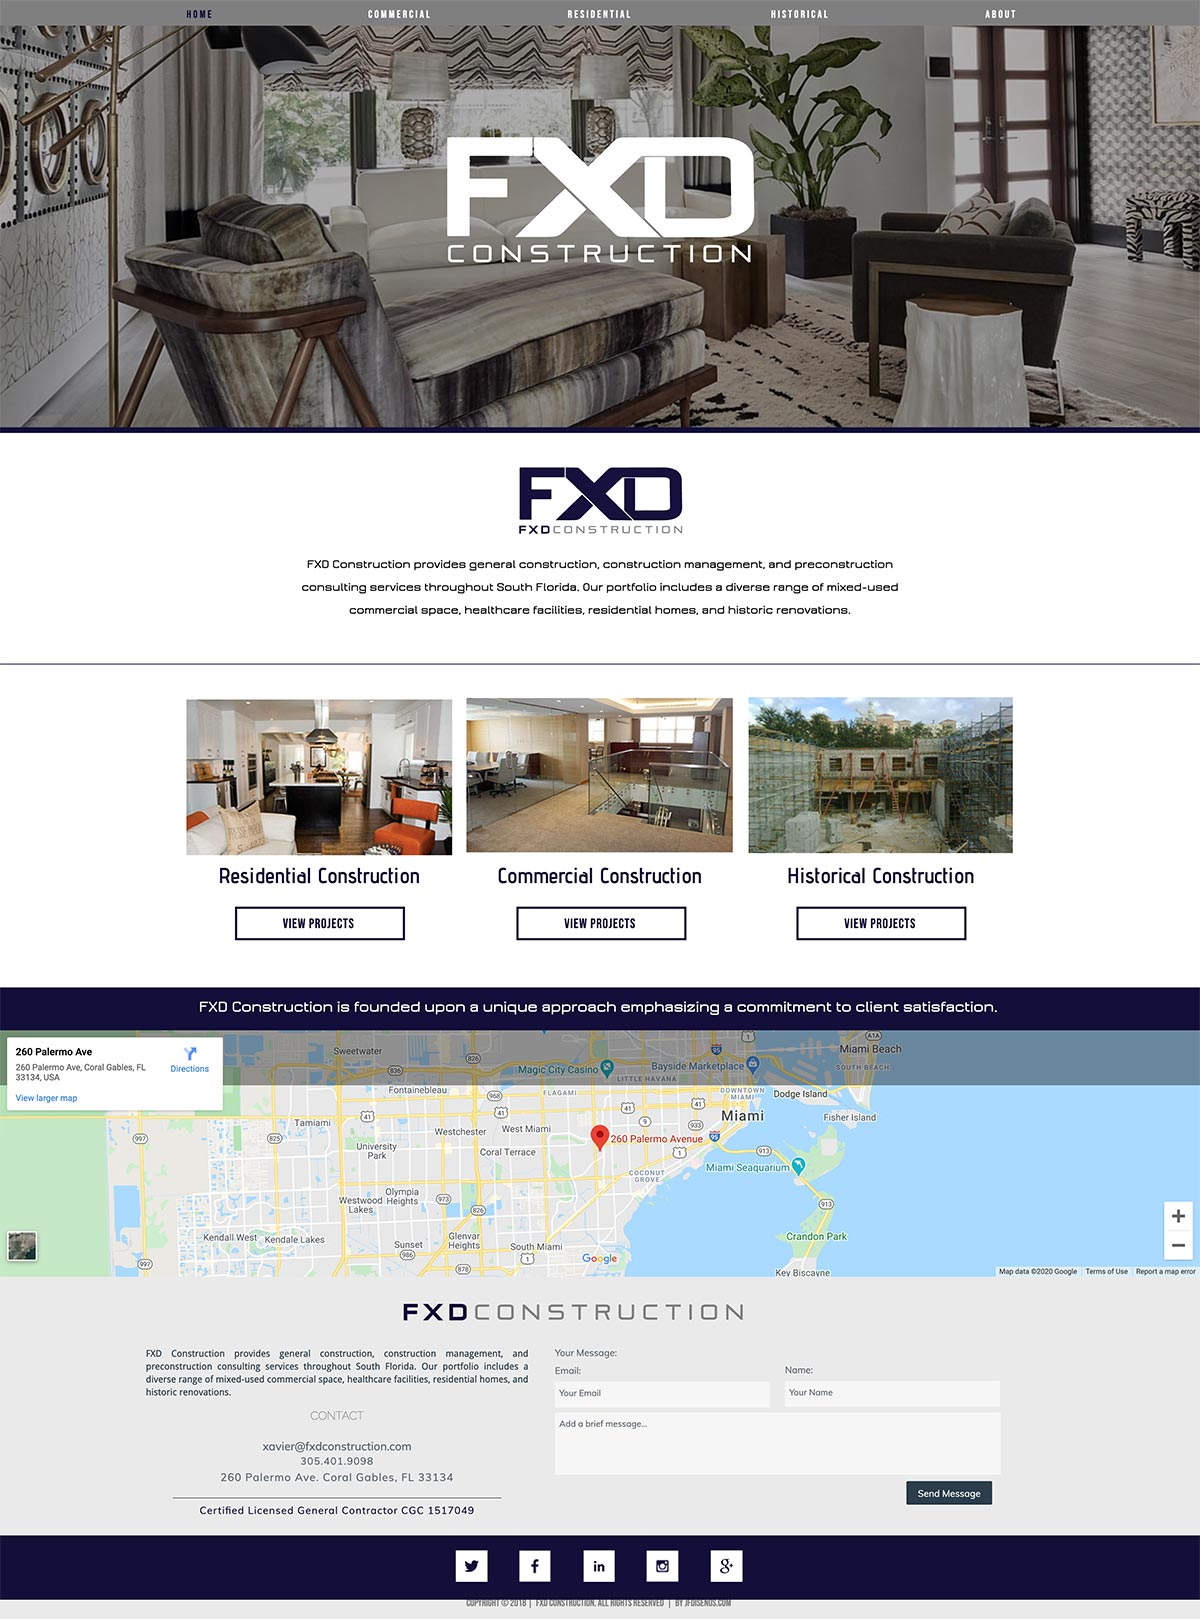 FXD Construction's old website